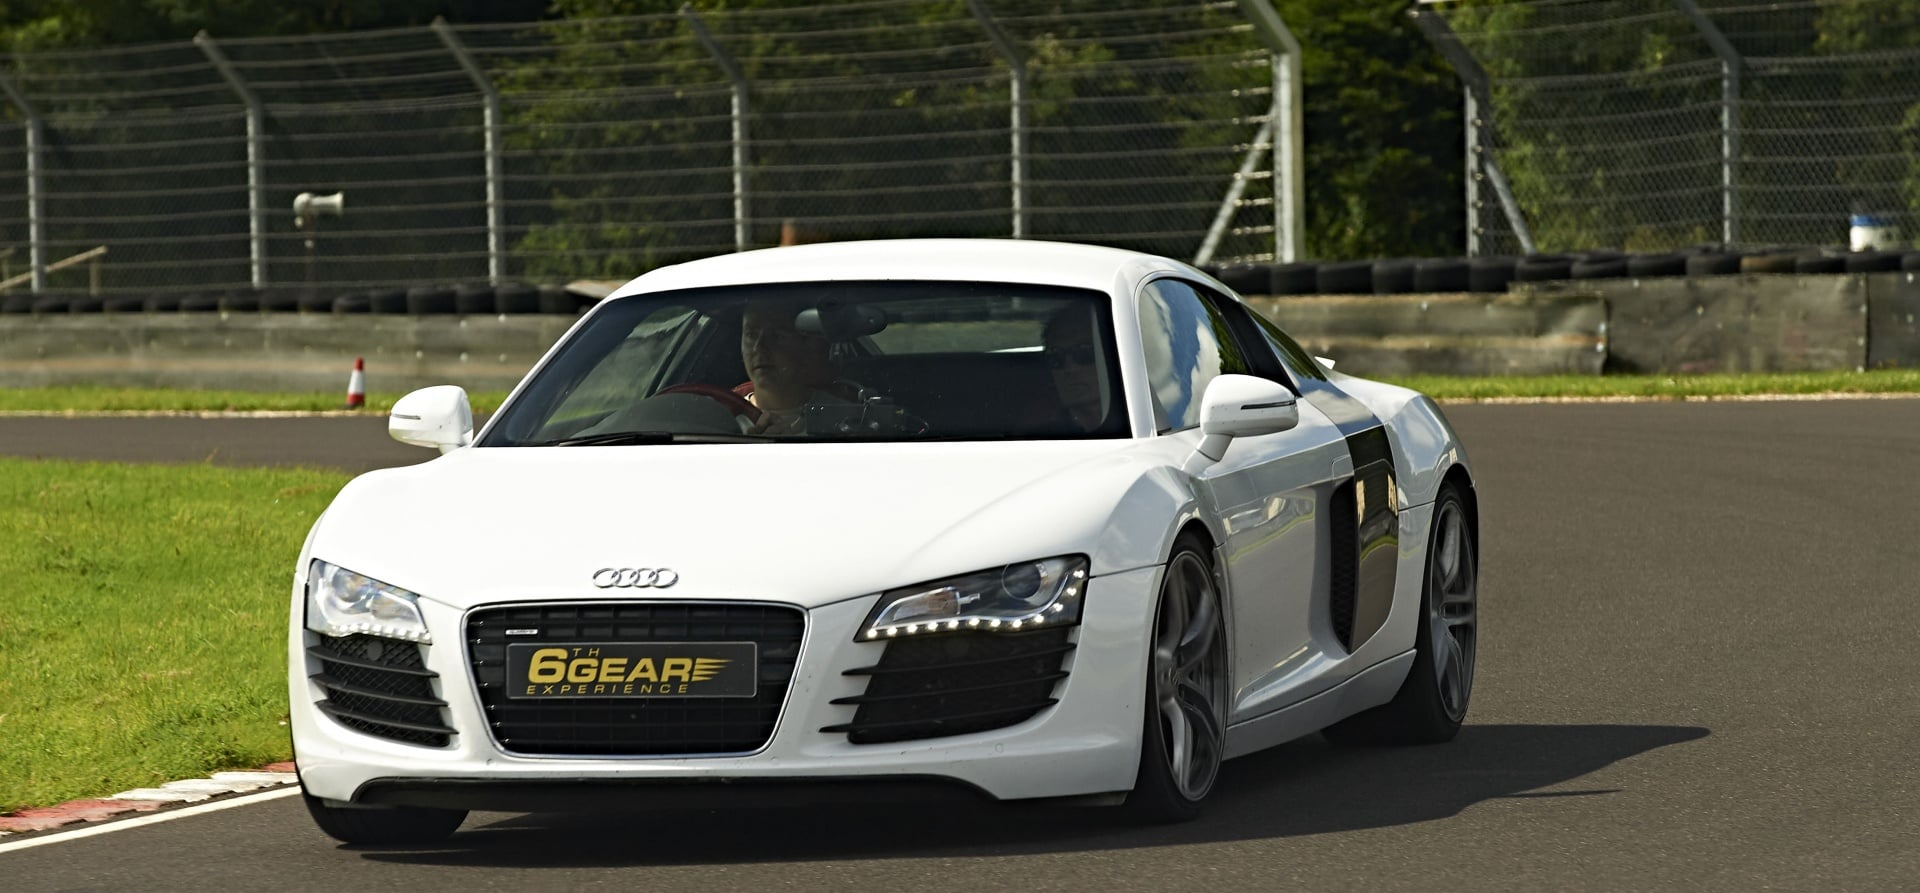 thrilling supercar track day experience in an audi r8. Black Bedroom Furniture Sets. Home Design Ideas